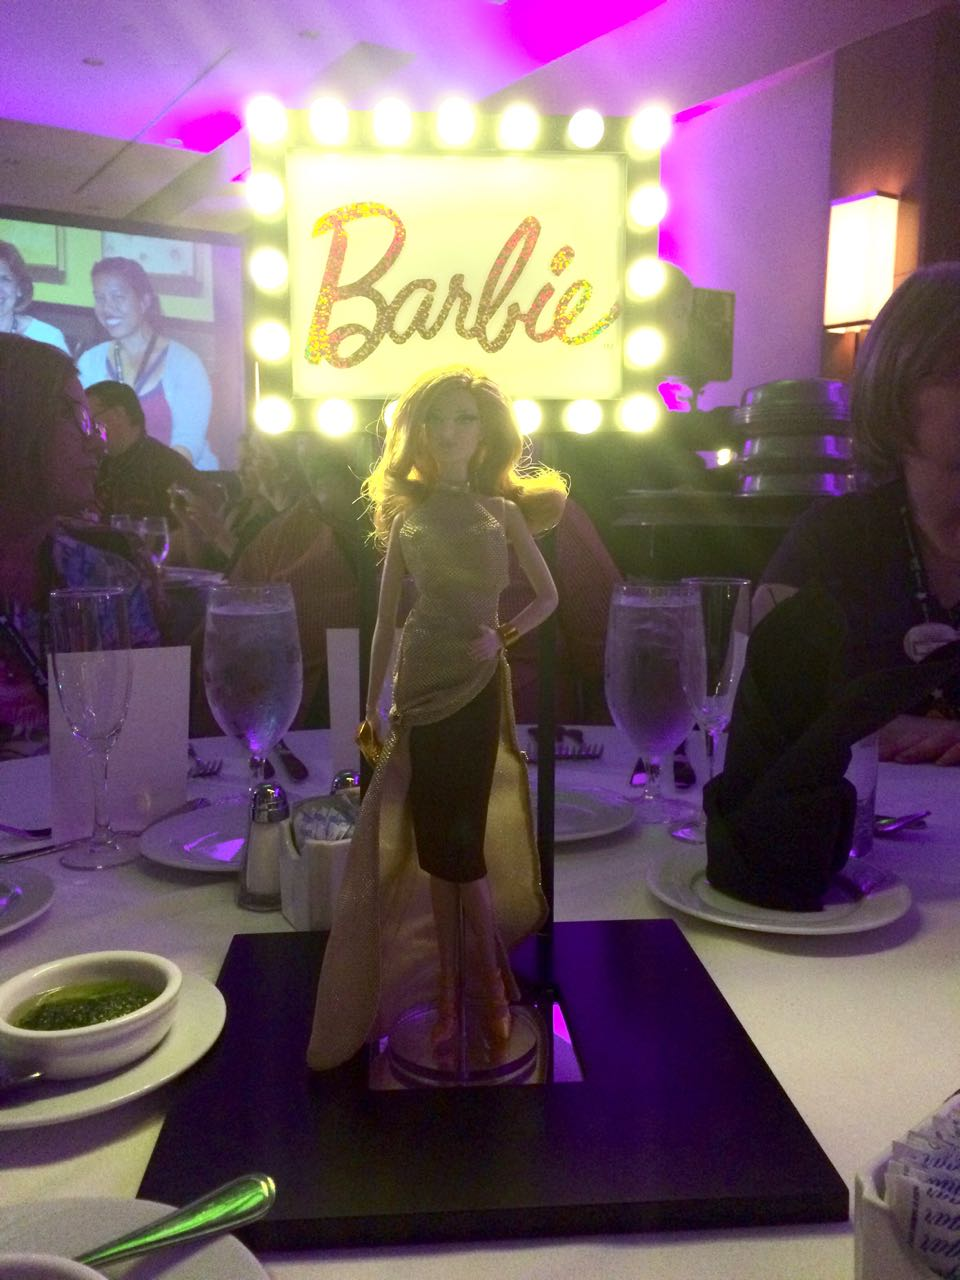 Centerpiece doll, I think the Louboutin sculpt used for one of the Red Carpet Barbie Look dolls